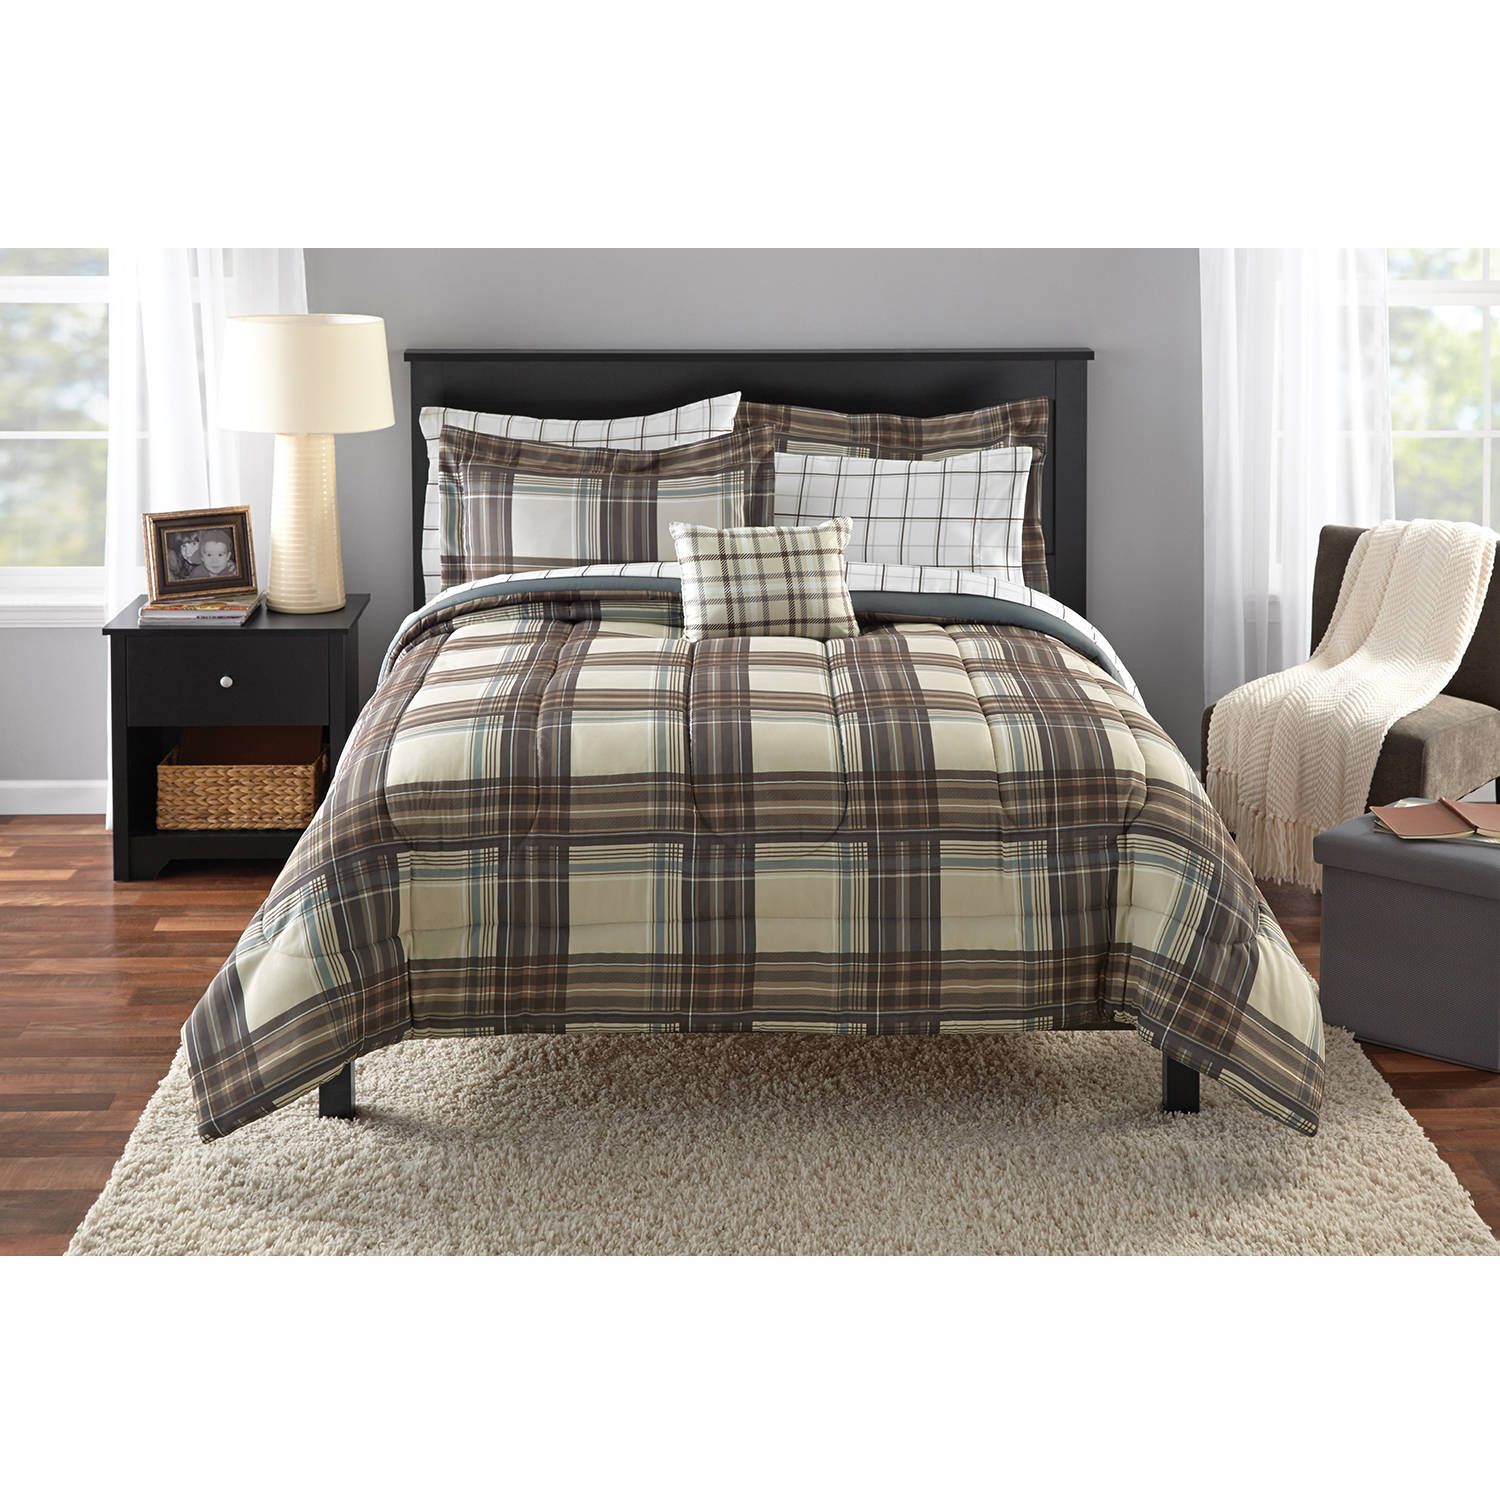 Mainstays Bed in a Bag, Brown Plaid